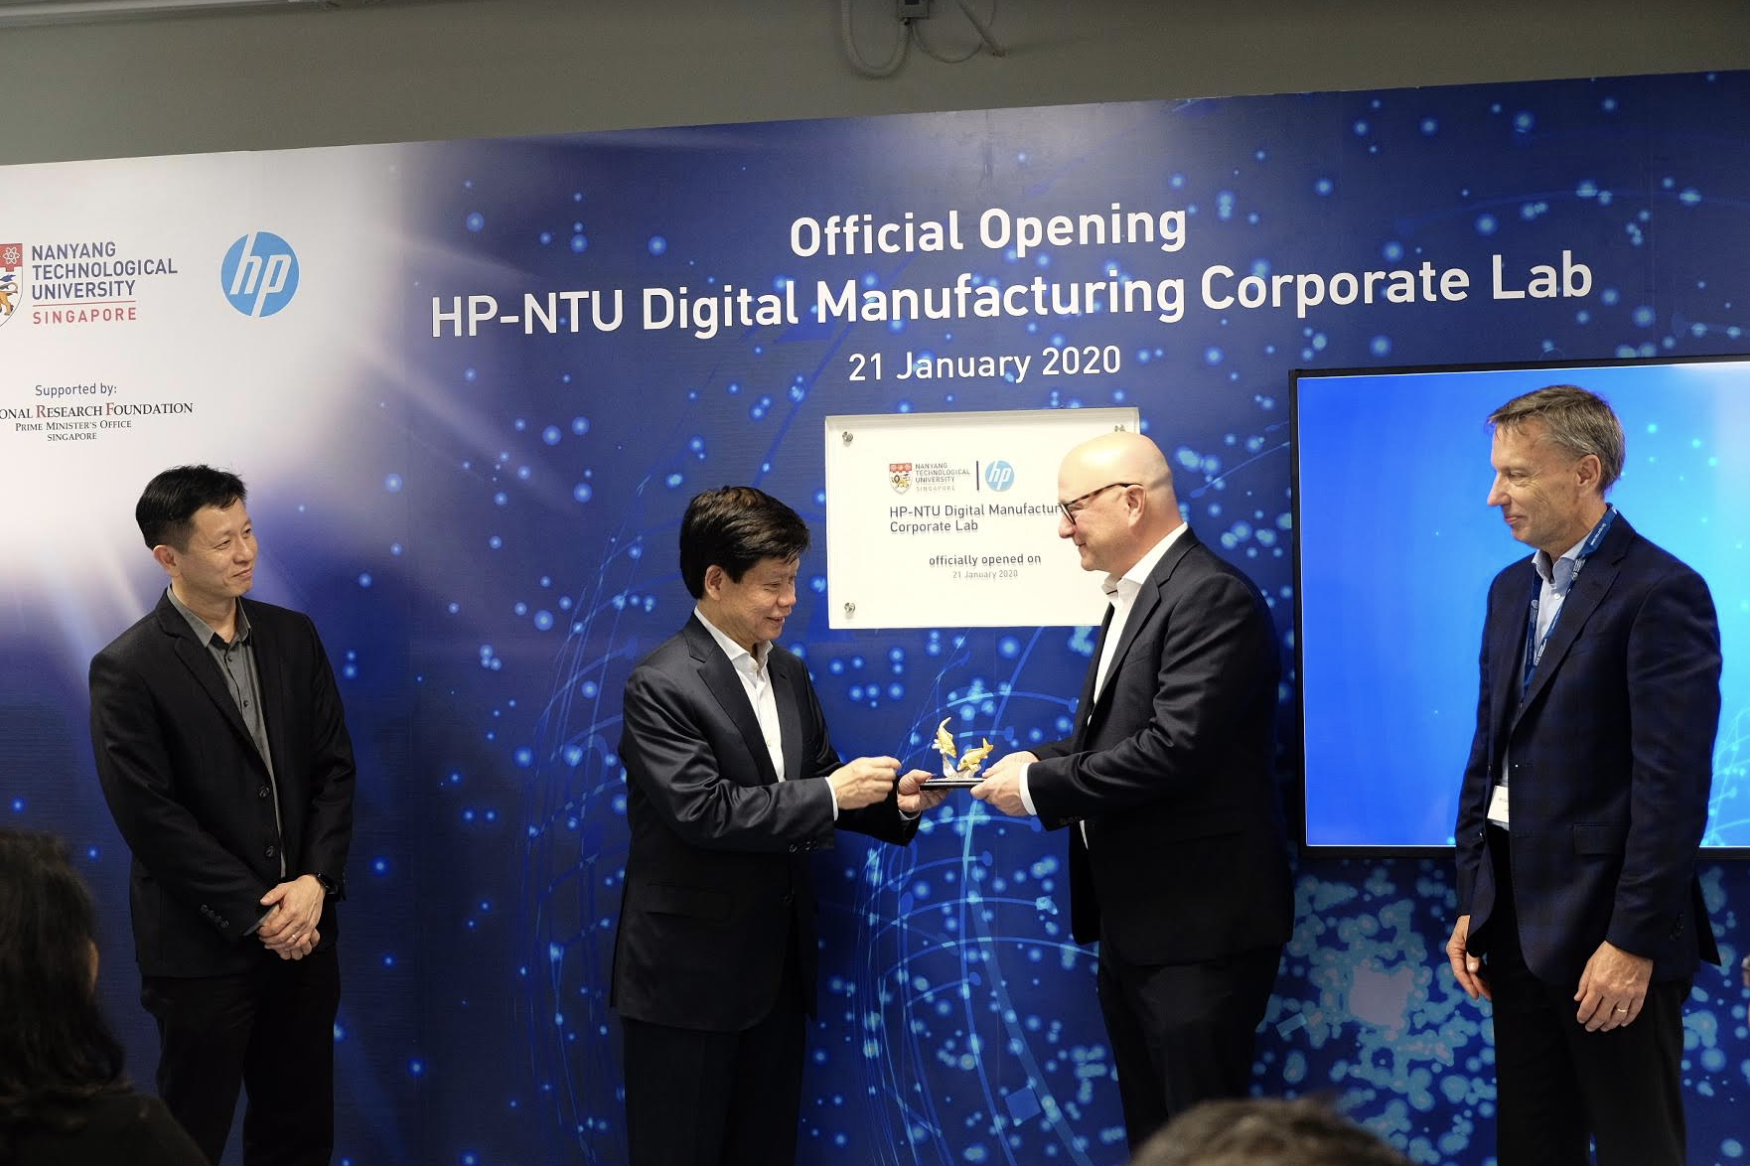 (Left to right) The HP-NTU Corporate Lab was officially opened today by NRF Singapore Executive Director Lim Tuang Liang, NTU Senior Vice President (Research) Prof Lam Khin Yong; HP Inc CTO Shane Wall; HP Inc Chief Technologist, Print, Glen Hopkins. At the opening, Prof Lam also presented token of appreciation to Wall. Photo courtesy: HP